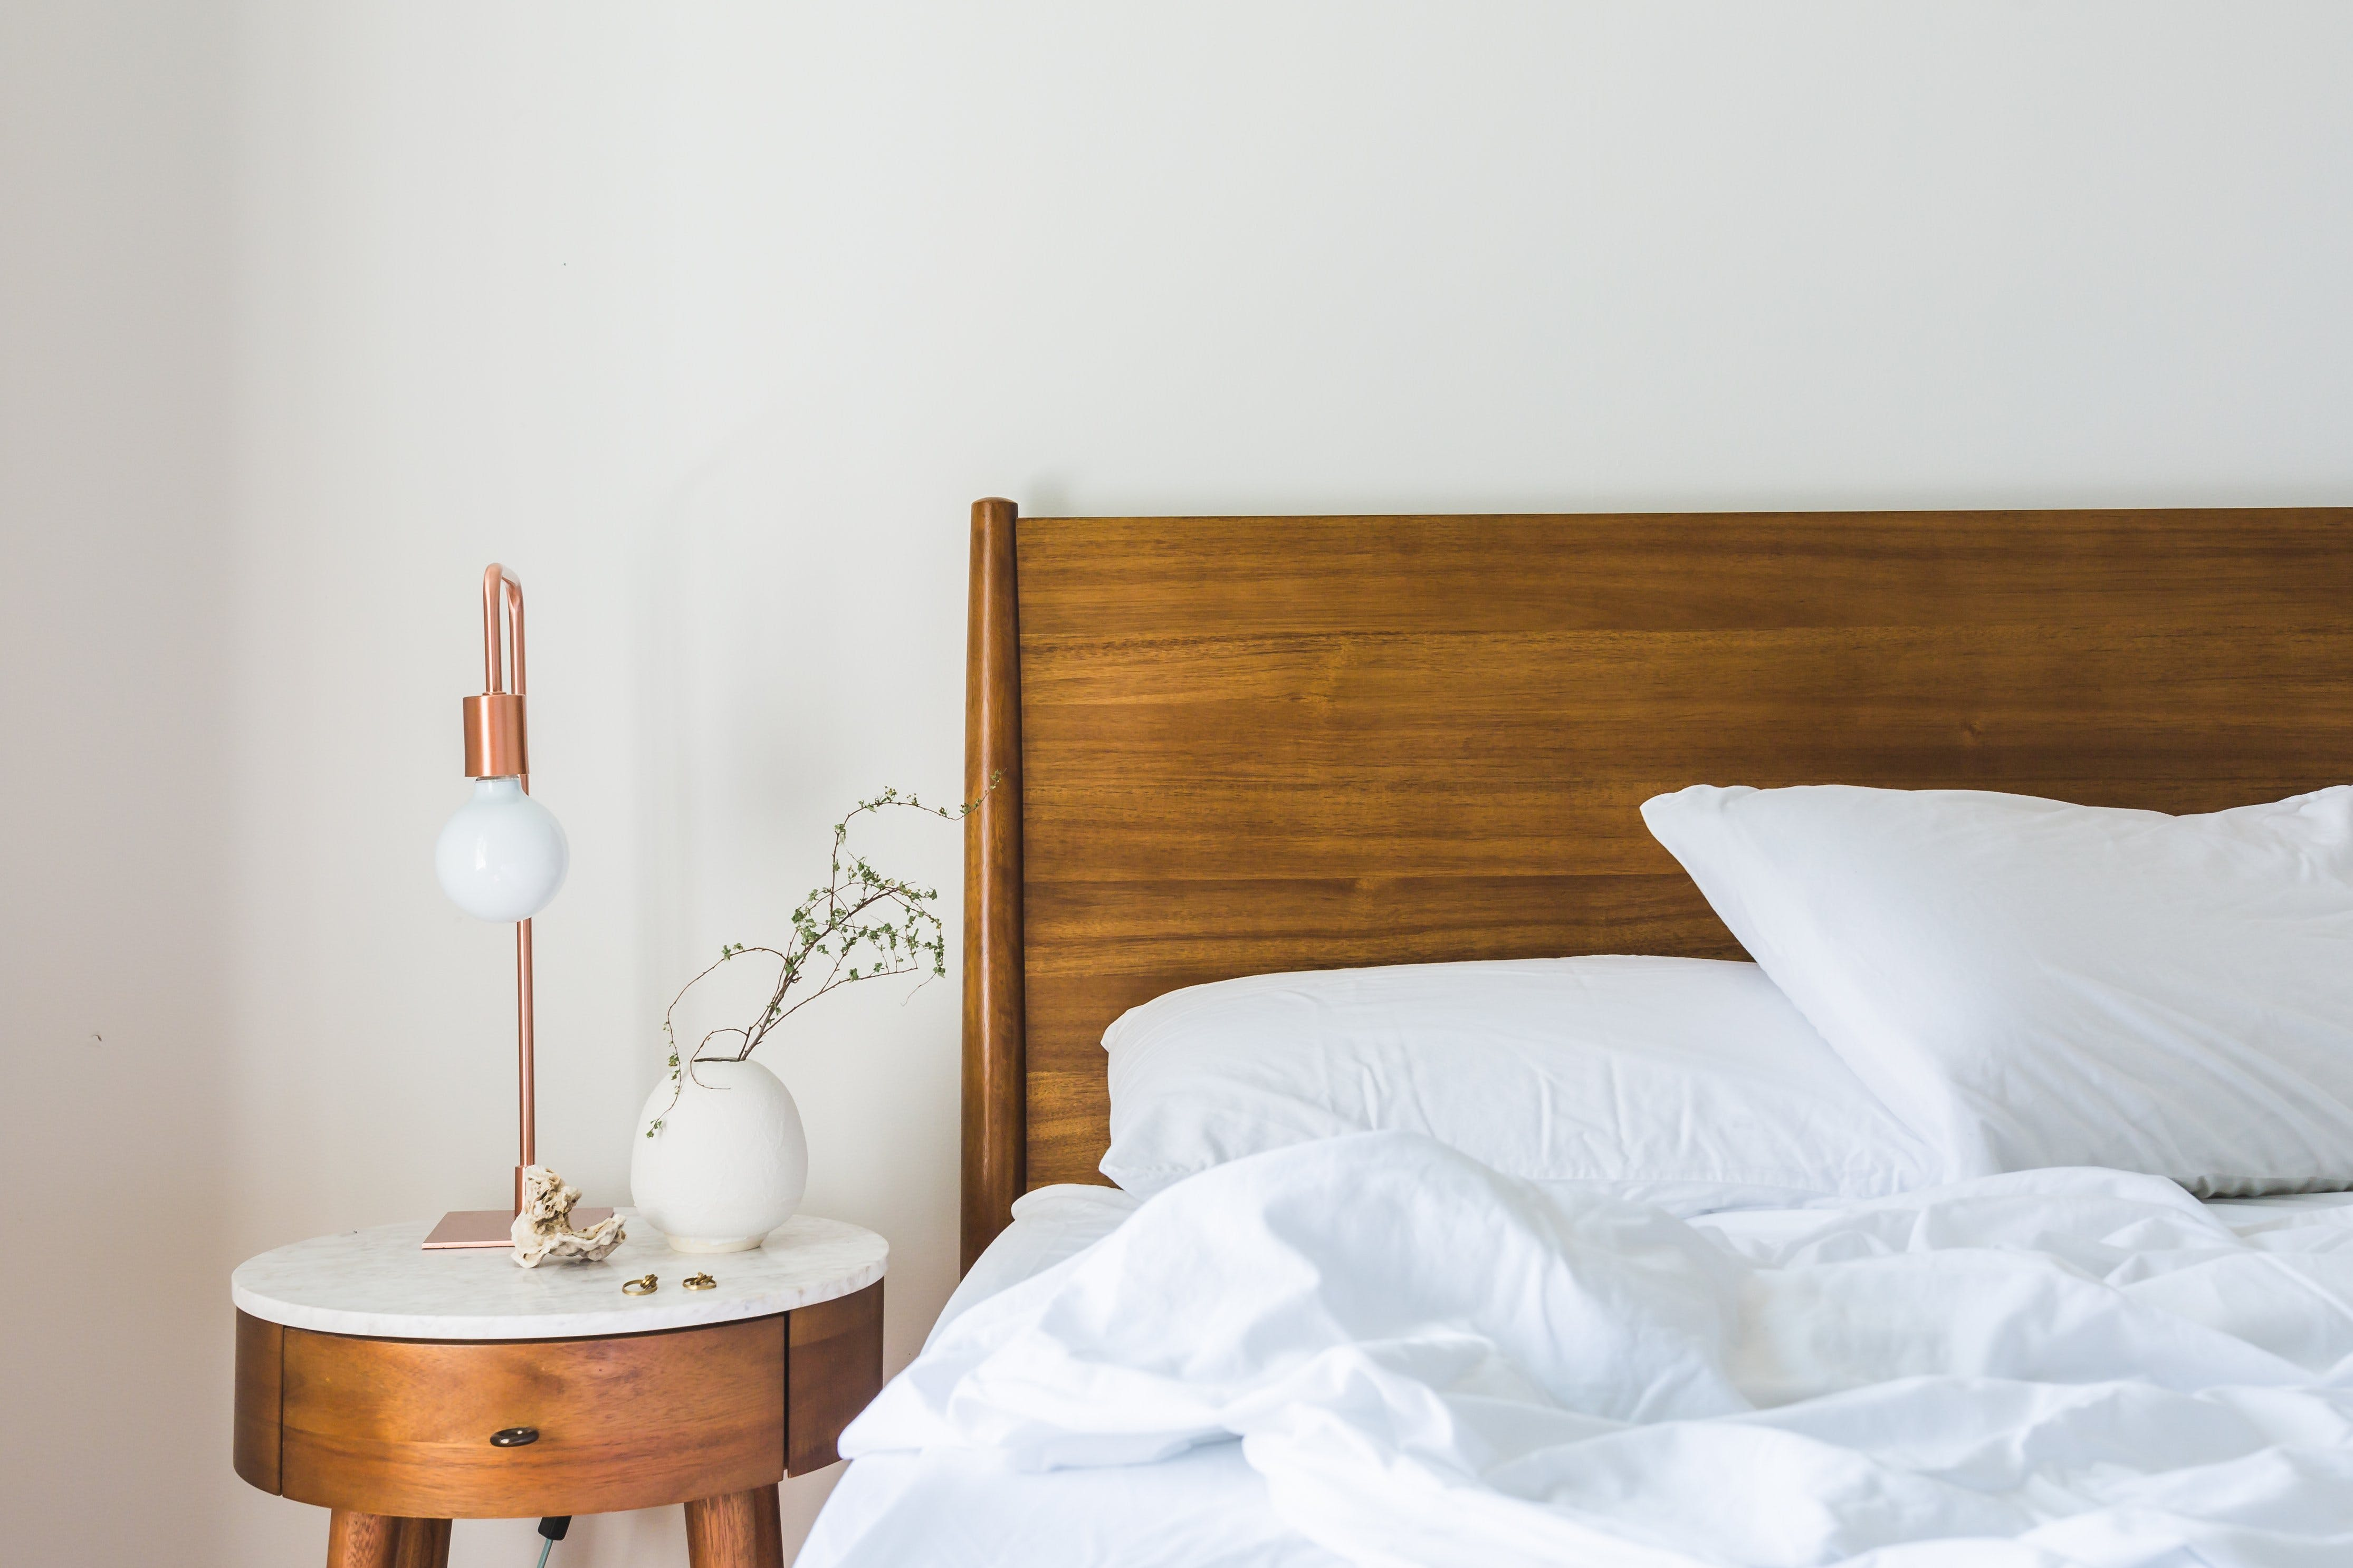 White Bedspread Beside Nightstand With White and Copper Table Lamp